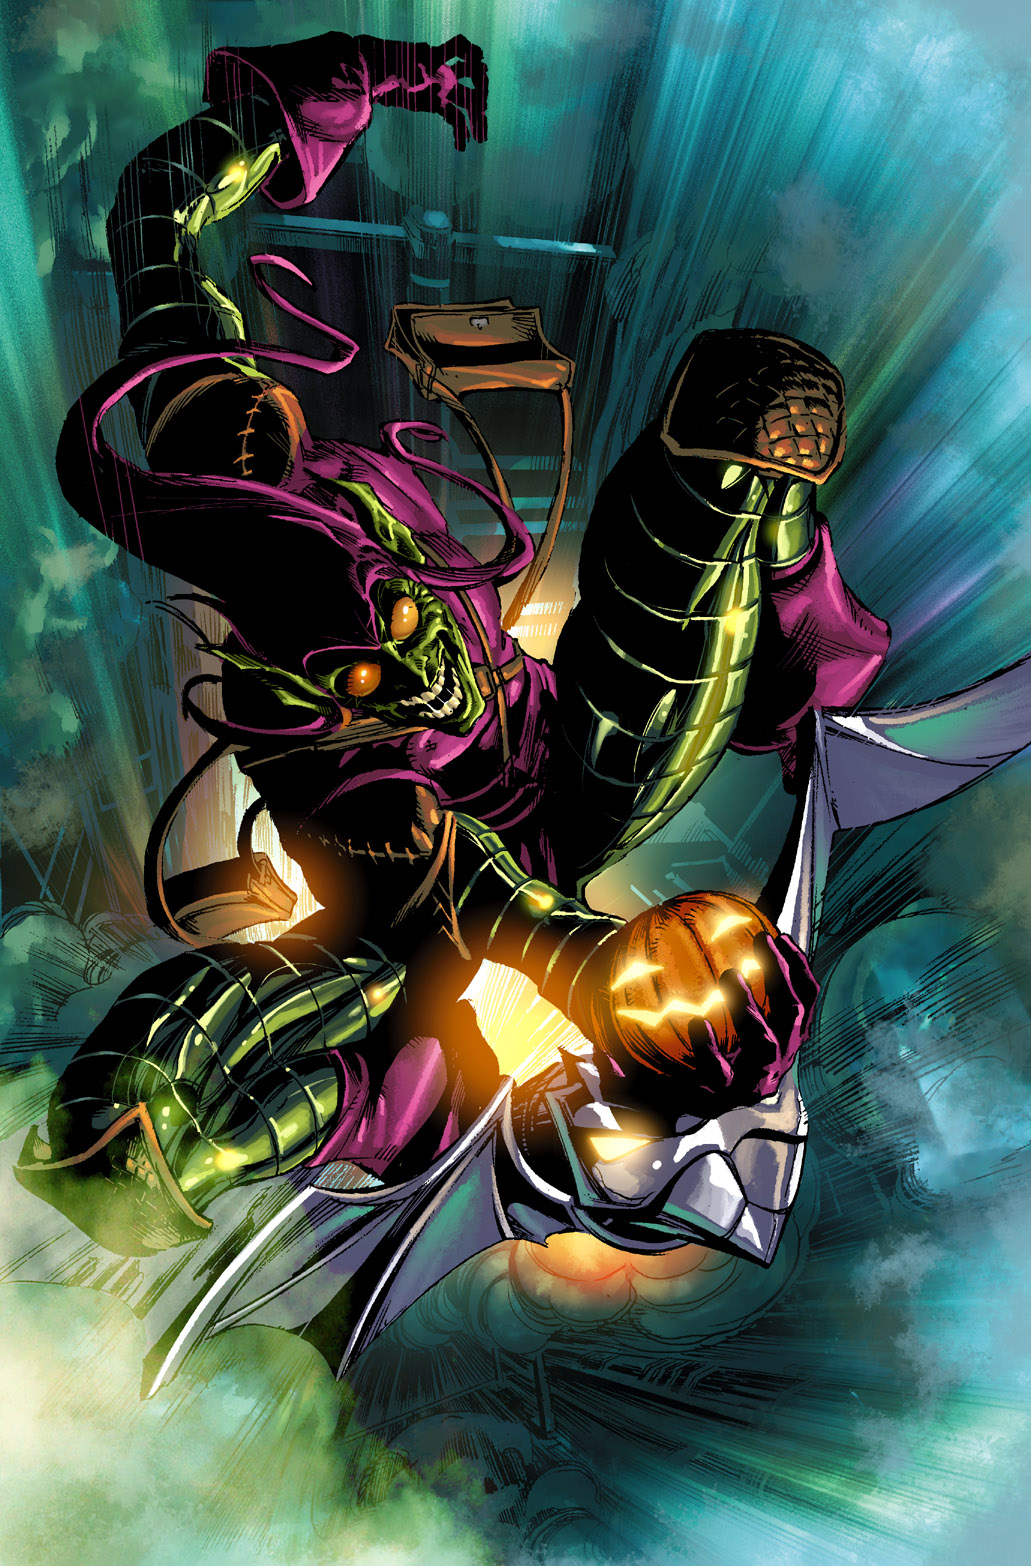 http://images1.wikia.nocookie.net/__cb20130228011654/marveldatabase/images/9/94/Norman_Osborn_(Earth-616)_from_Thunderbolts_Vol_1_120.jpg